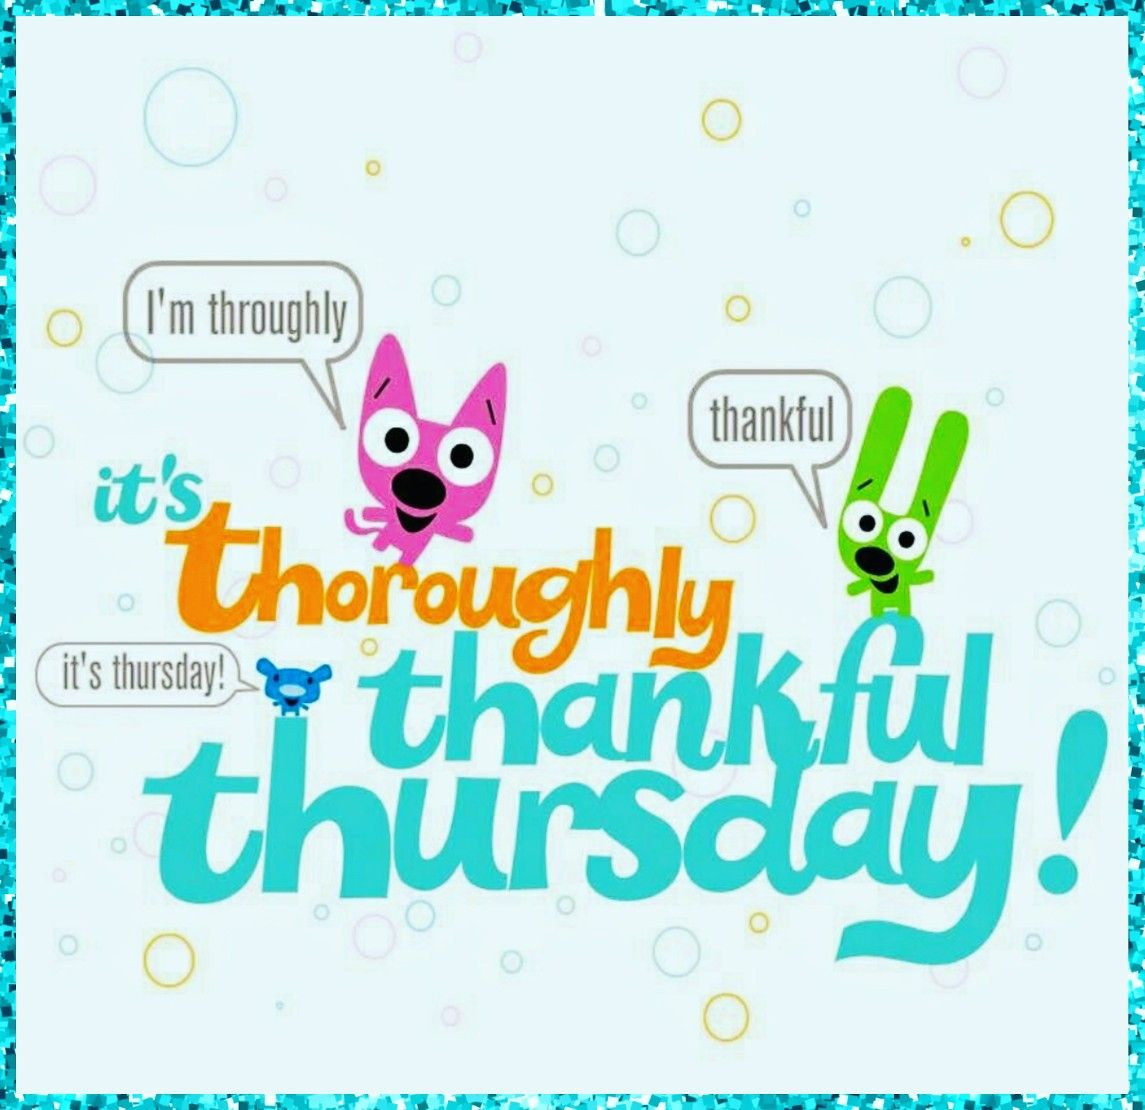 Happy Thankful Thursday What Are You For Today Thankfulthursday Grateful Fit50 Healthy Greatfriends